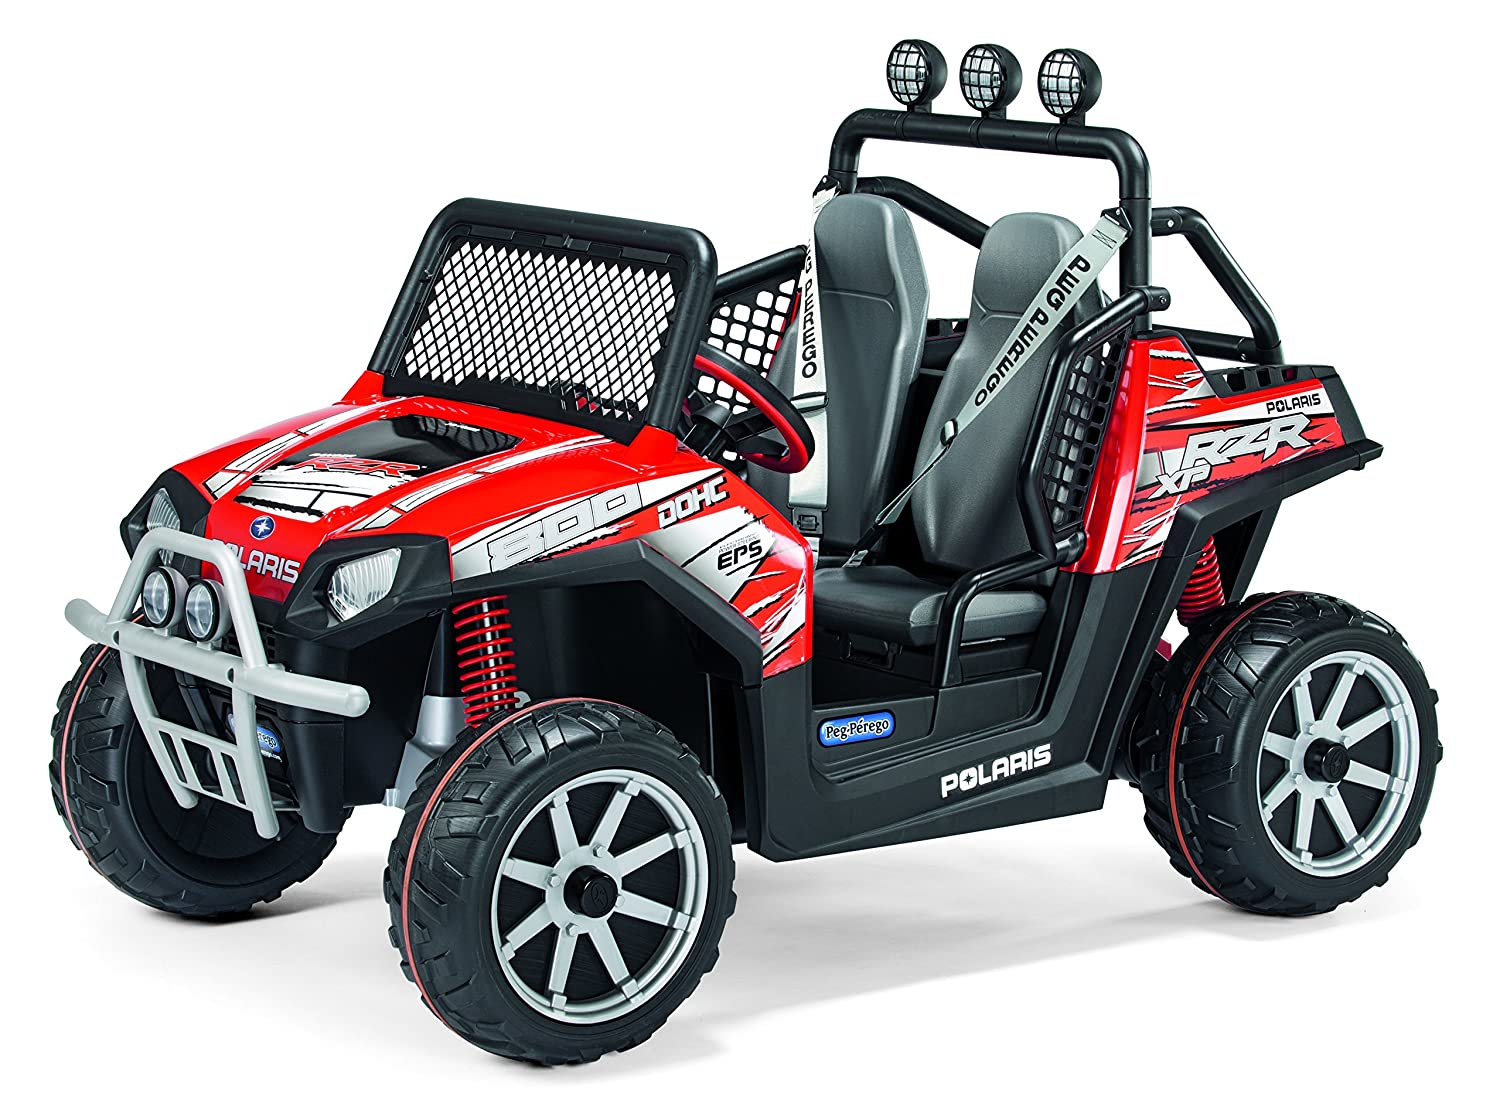 peg perego electric car for kids ride on rzr polaris red ranger 24 volt battery ebay. Black Bedroom Furniture Sets. Home Design Ideas